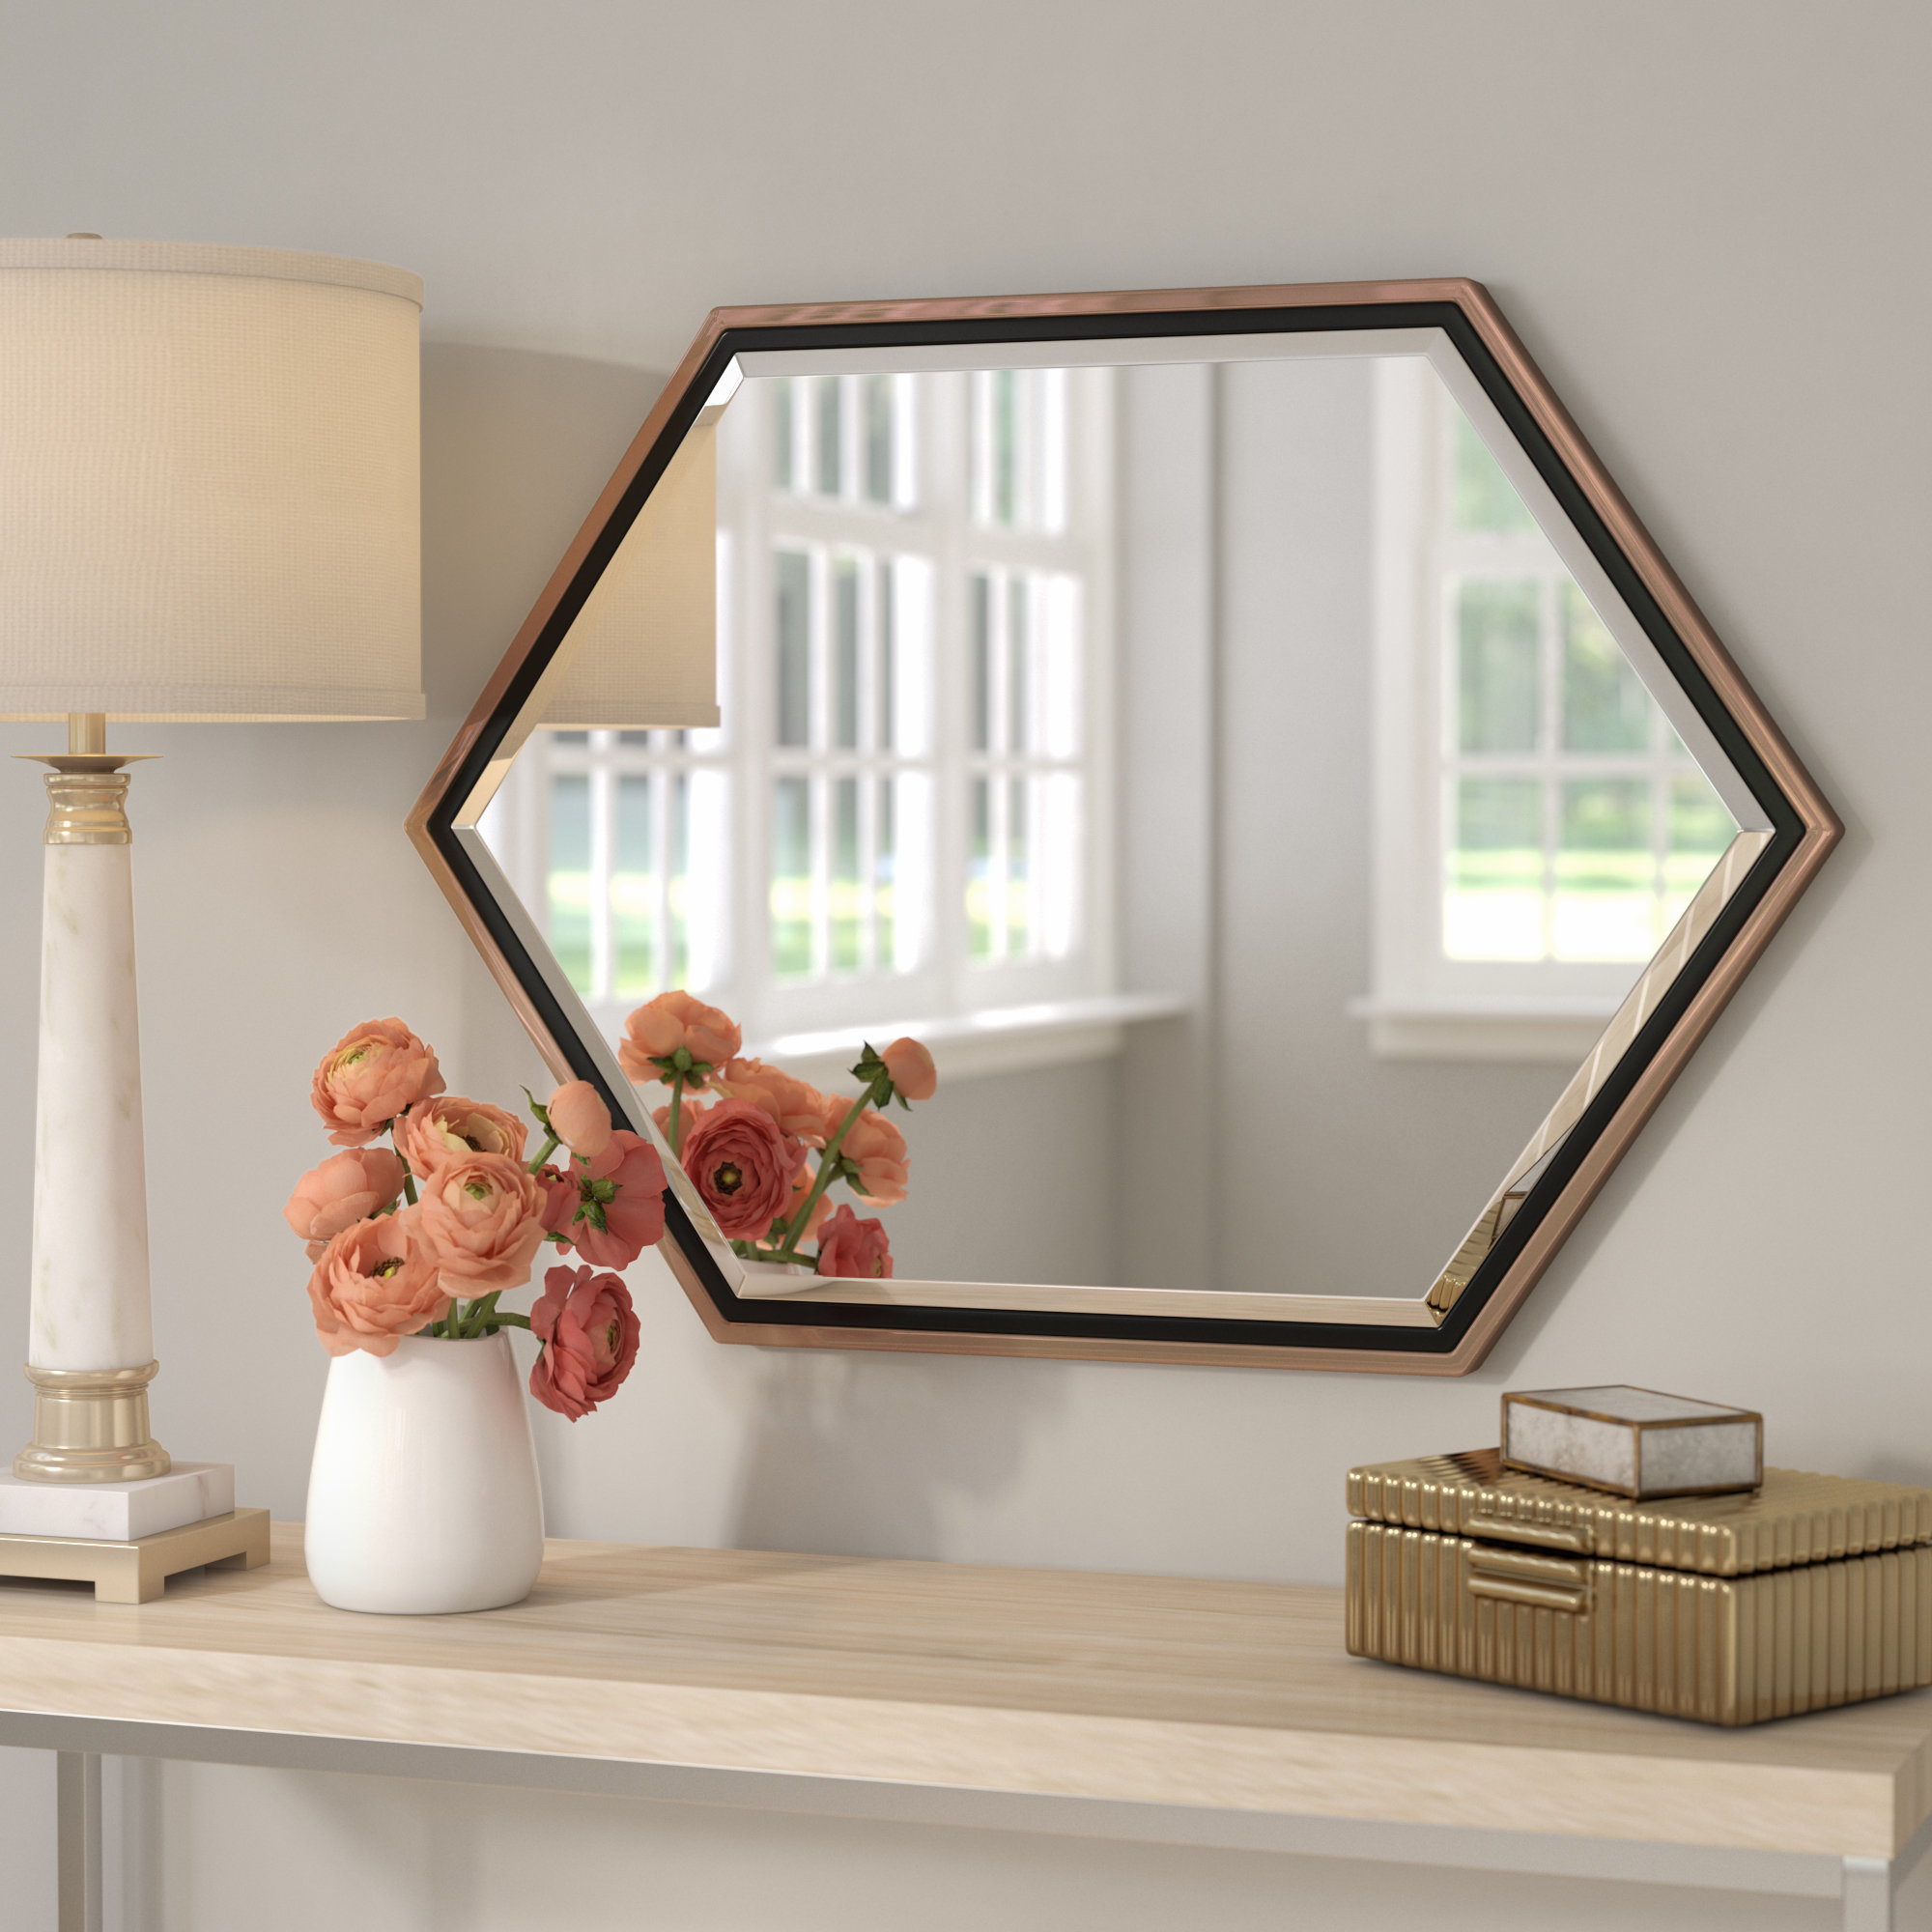 Contemporary Metal Frame Accent Wall Mirror Pertaining To Accent Wall Mirrors (Image 7 of 20)